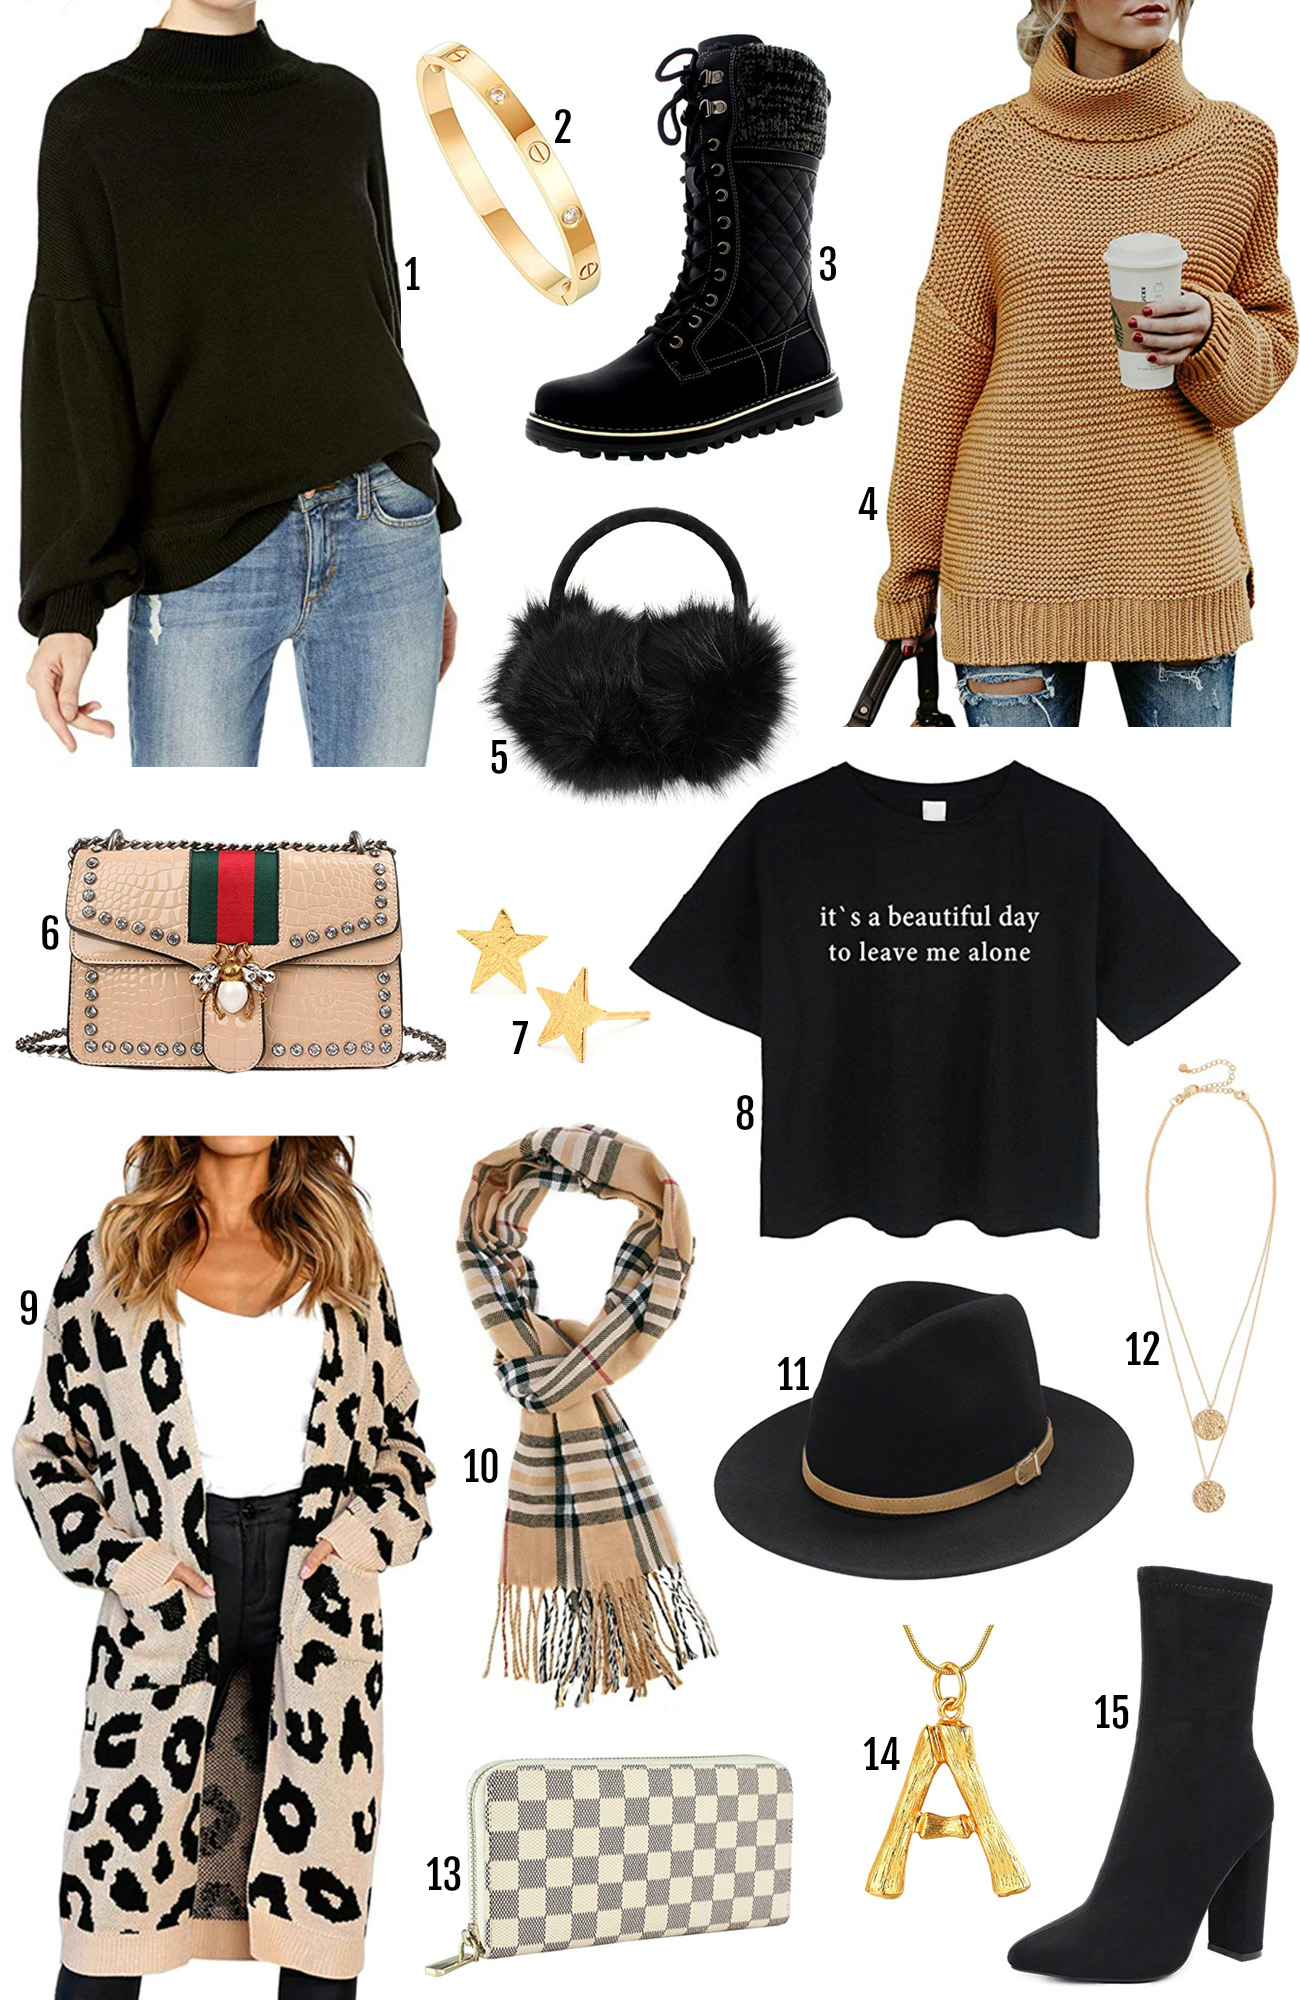 Beauty blogger Mash Elle | Amazon winter fashion finds | what's hot on Amazon this winter | black ear muffs | boots | checkered clutch | animal print cardigan |